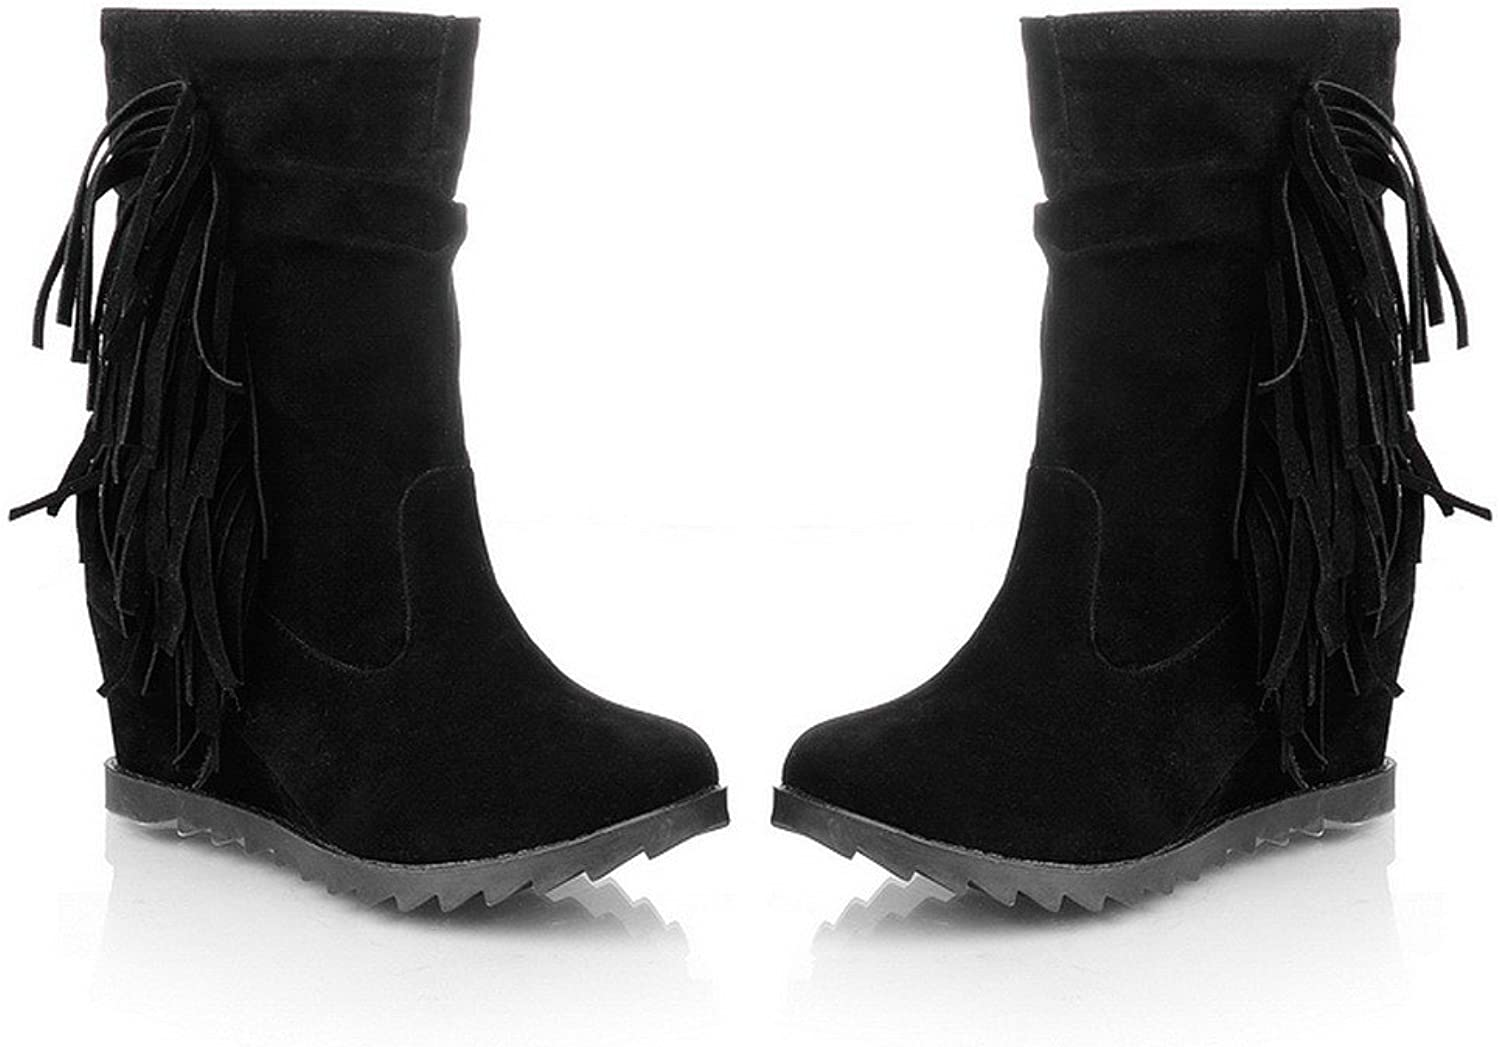 AmoonyFashion Womens Closed Round Toe Kitten Heels PU Short Plush Solid Boots with Tassels and Wedge, Black, 7.5 B(M) US